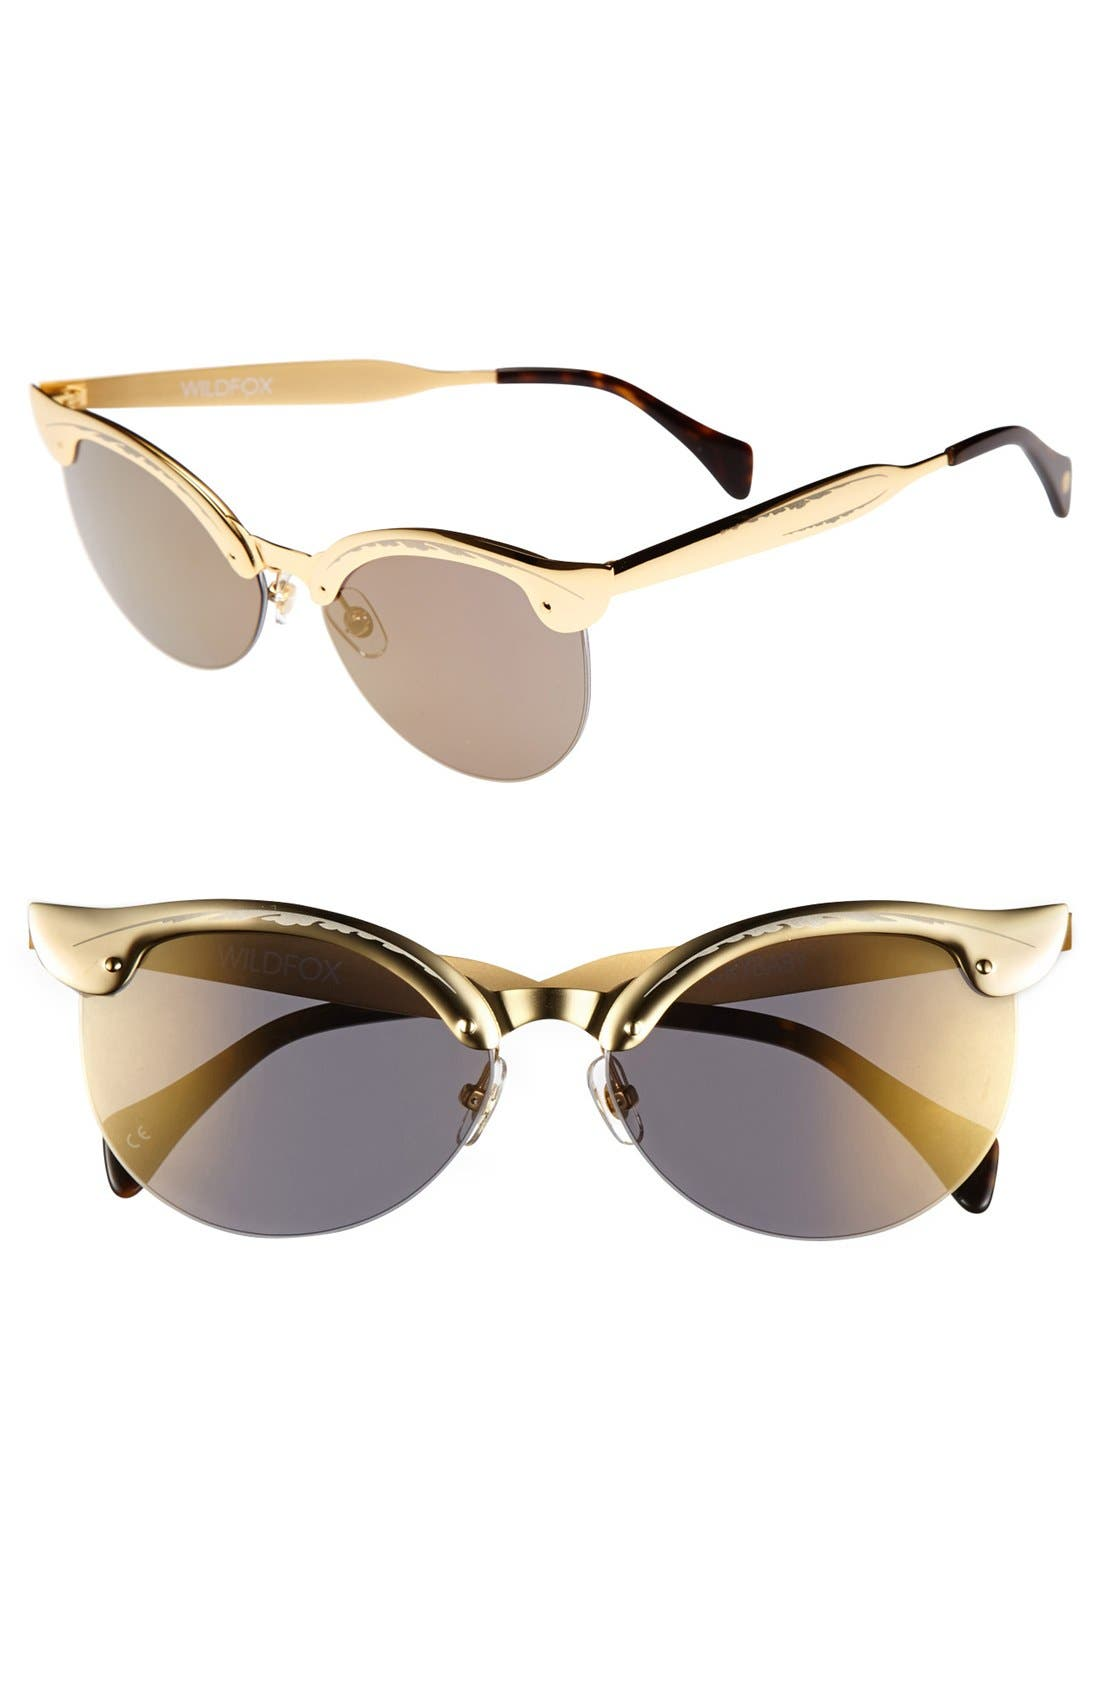 Alternate Image 1 Selected - Wildfox 'Crybaby Deluxe' 57mm Sunglasses